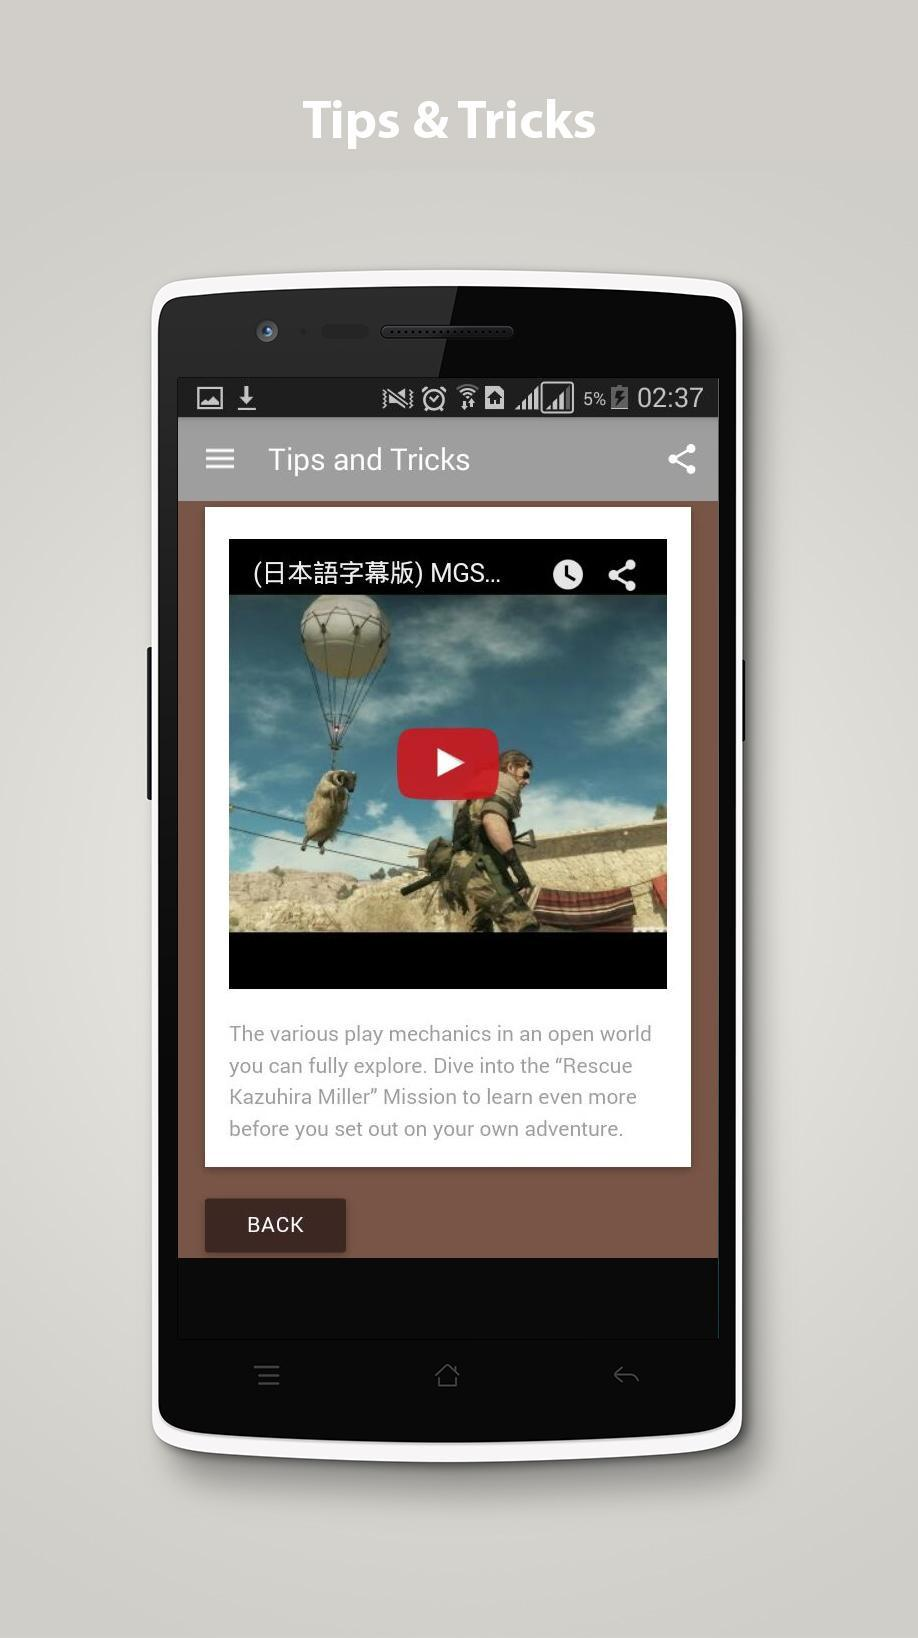 Cheats for Metal Gear Solid 5 for Android - APK Download